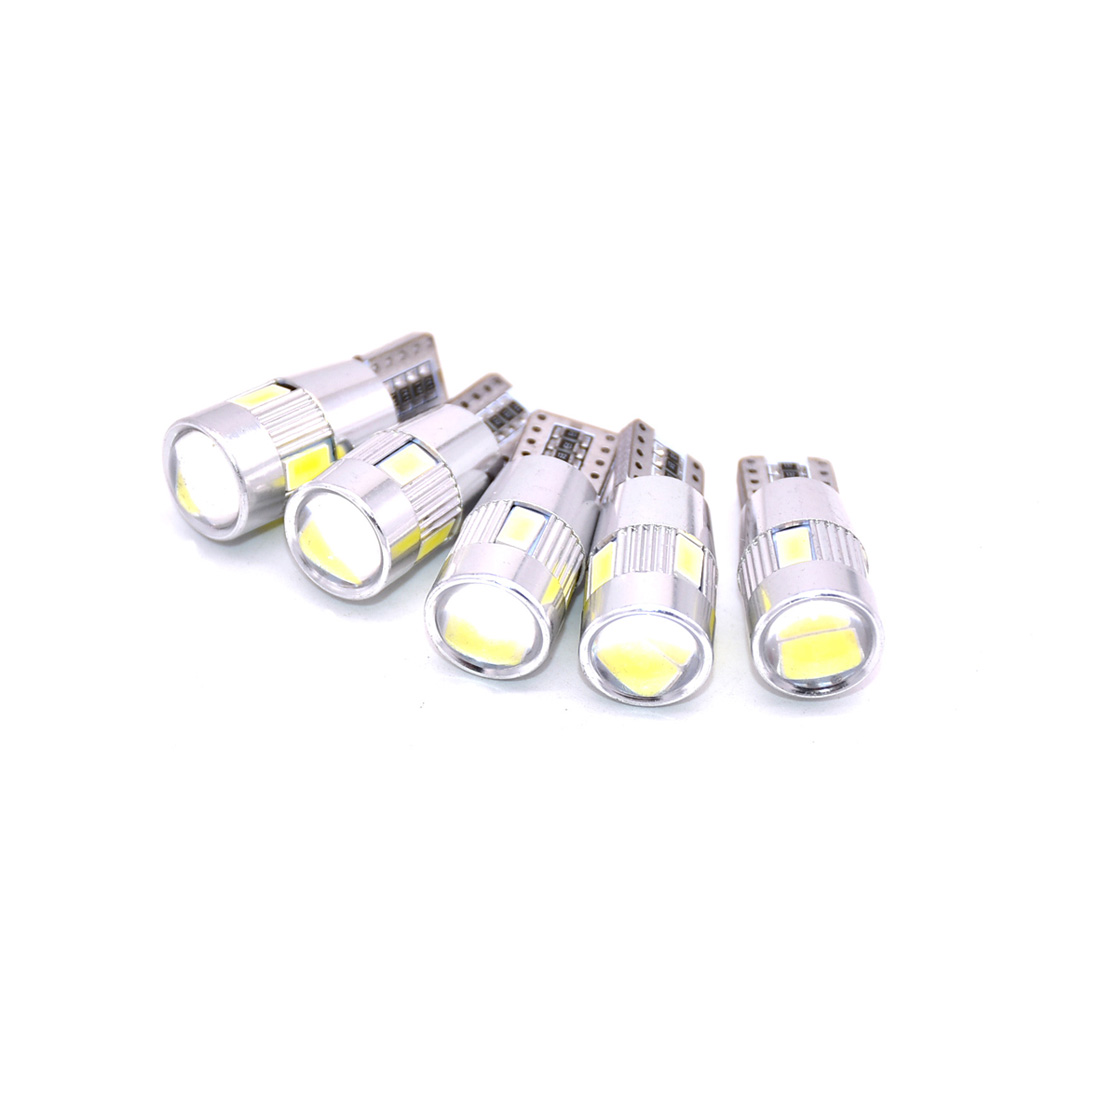 T10 W5W Car <font><b>LED</b></font> Turn Signal Bulb <font><b>Canbus</b></font> Auto Interior Dome Reading Light Wedge Side Parking Reverse Brake Lamp <font><b>5W5</b></font> 5630 6smd image